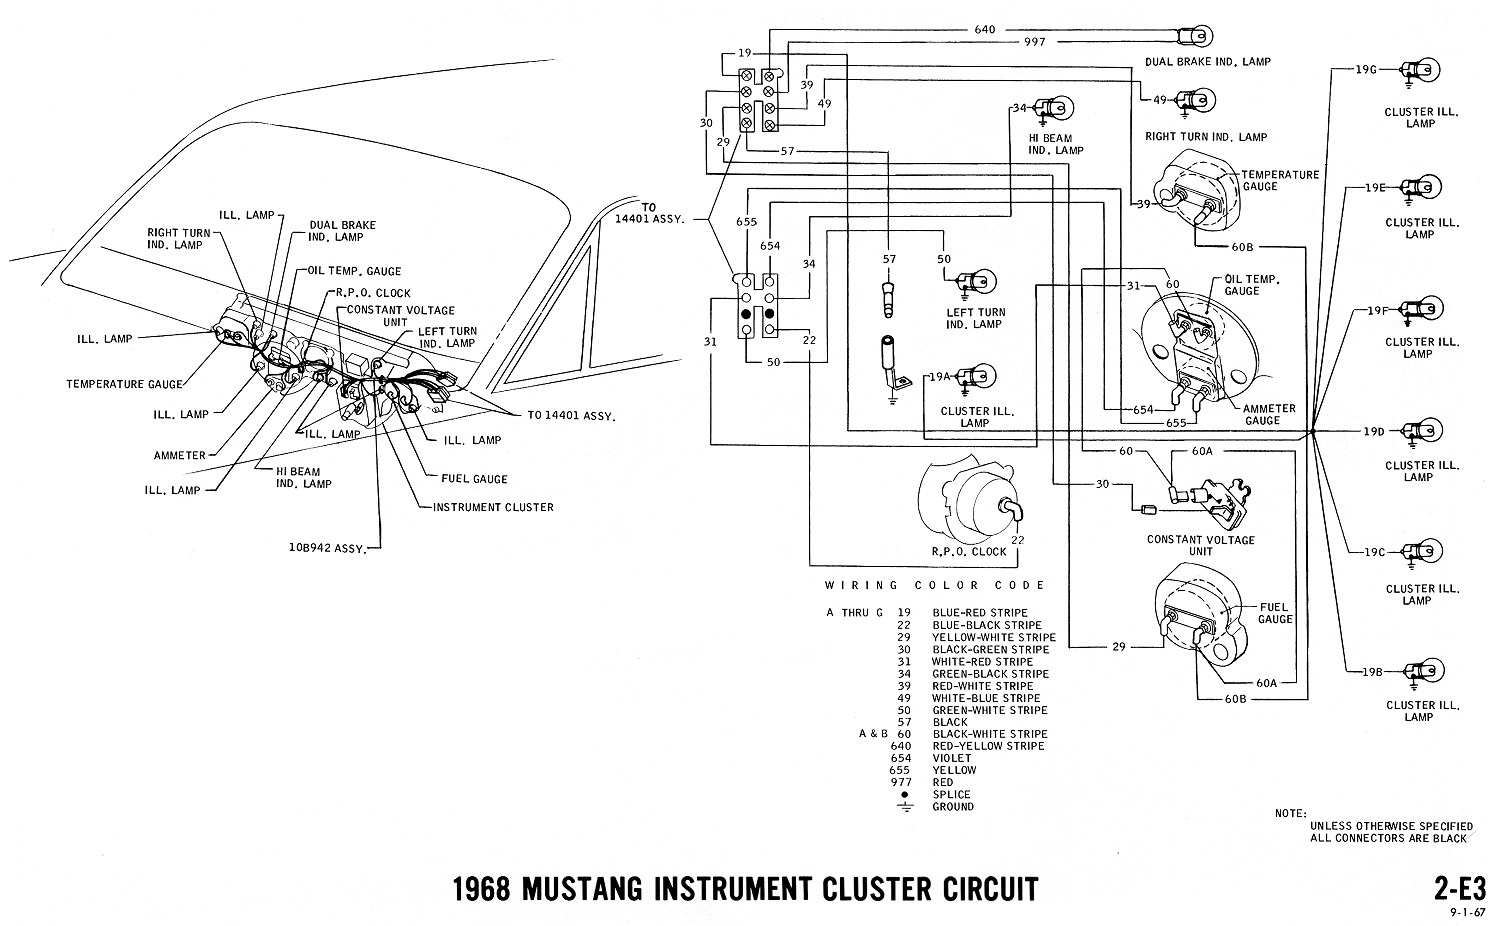 1968 mustang wiring diagram instruments 1967 mustang wiring diagram 1967 mustang radio wiring diagram 86 Mustang Wiring Diagram at panicattacktreatment.co